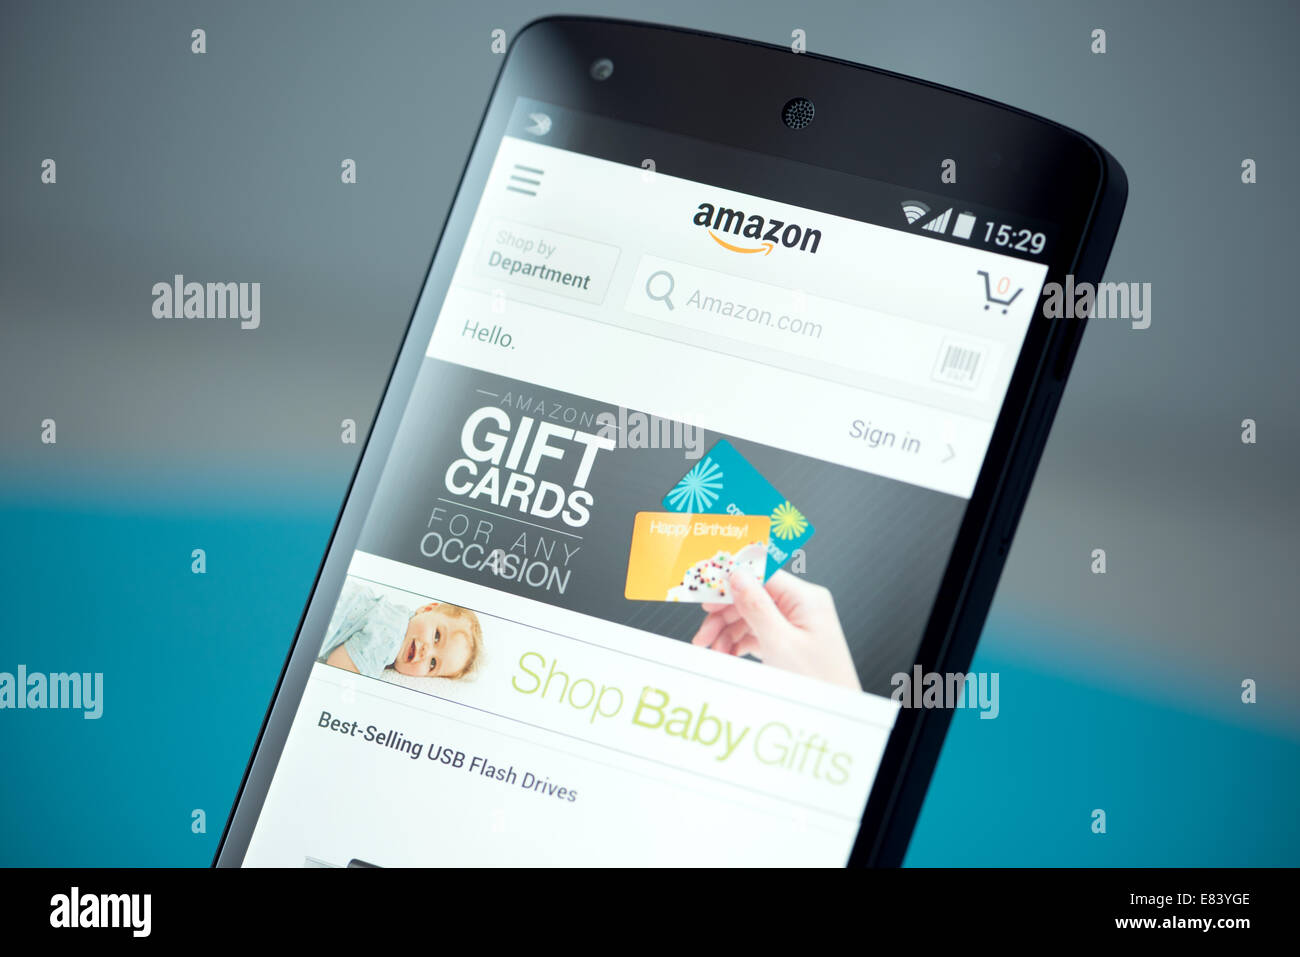 Clouse-up shot of brand new Google Nexus 5, powered by Android 4.4 version, with Amazon website page on a screen. - Stock Image